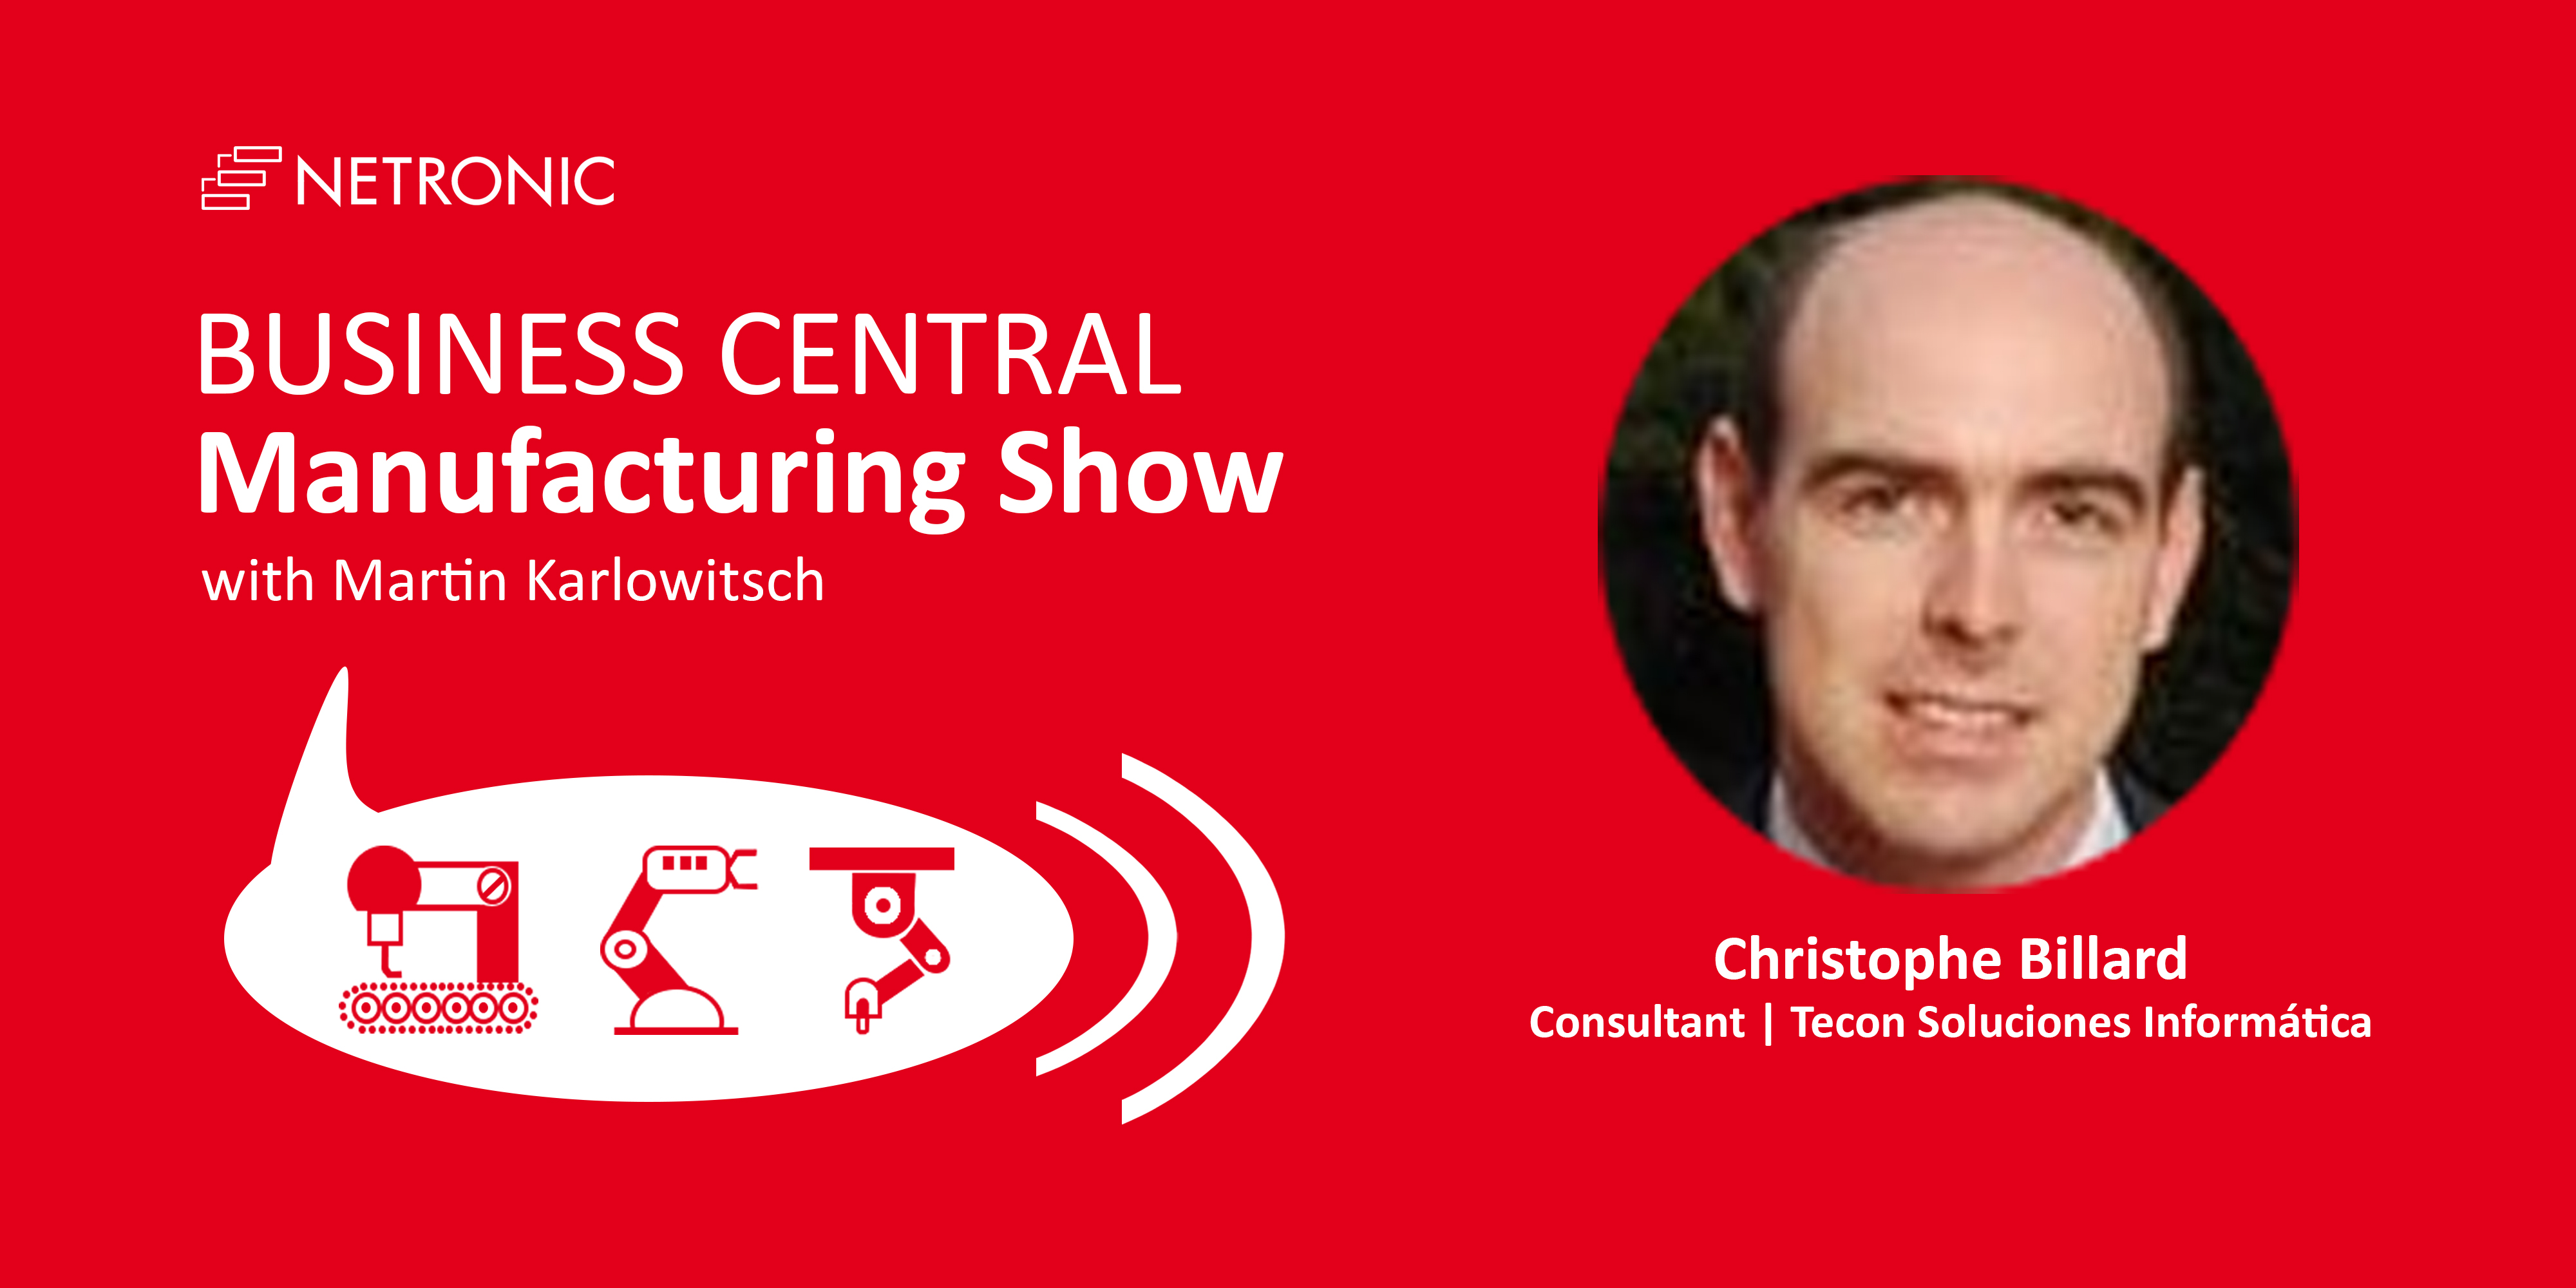 The Business Central Manufacturing Show - Christophe Billard